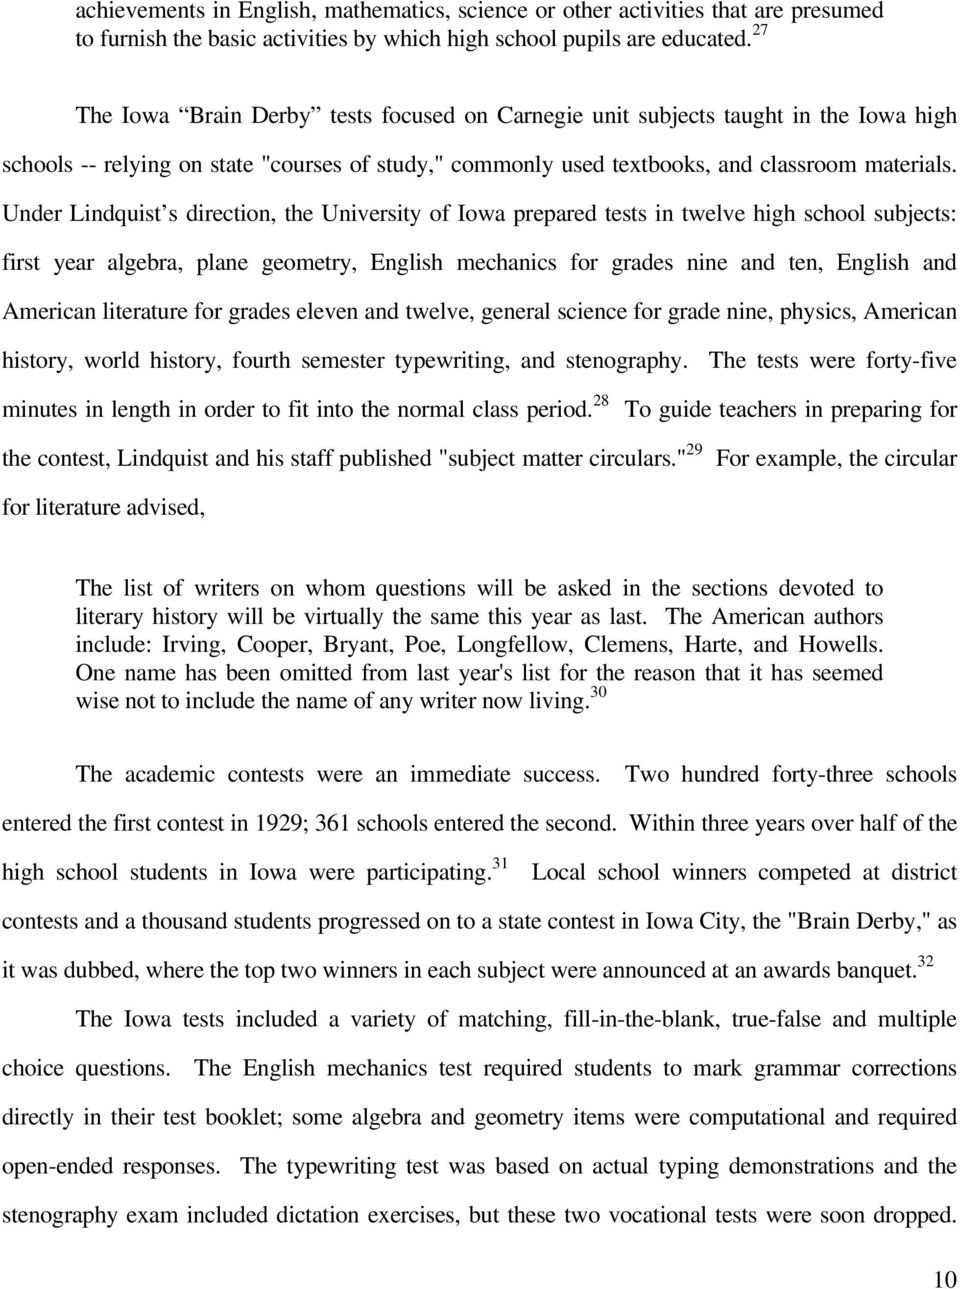 Under Lindquist s direction, the University of Iowa prepared tests in twelve high school subjects: first year algebra, plane geometry, English mechanics for grades nine and ten, English and American